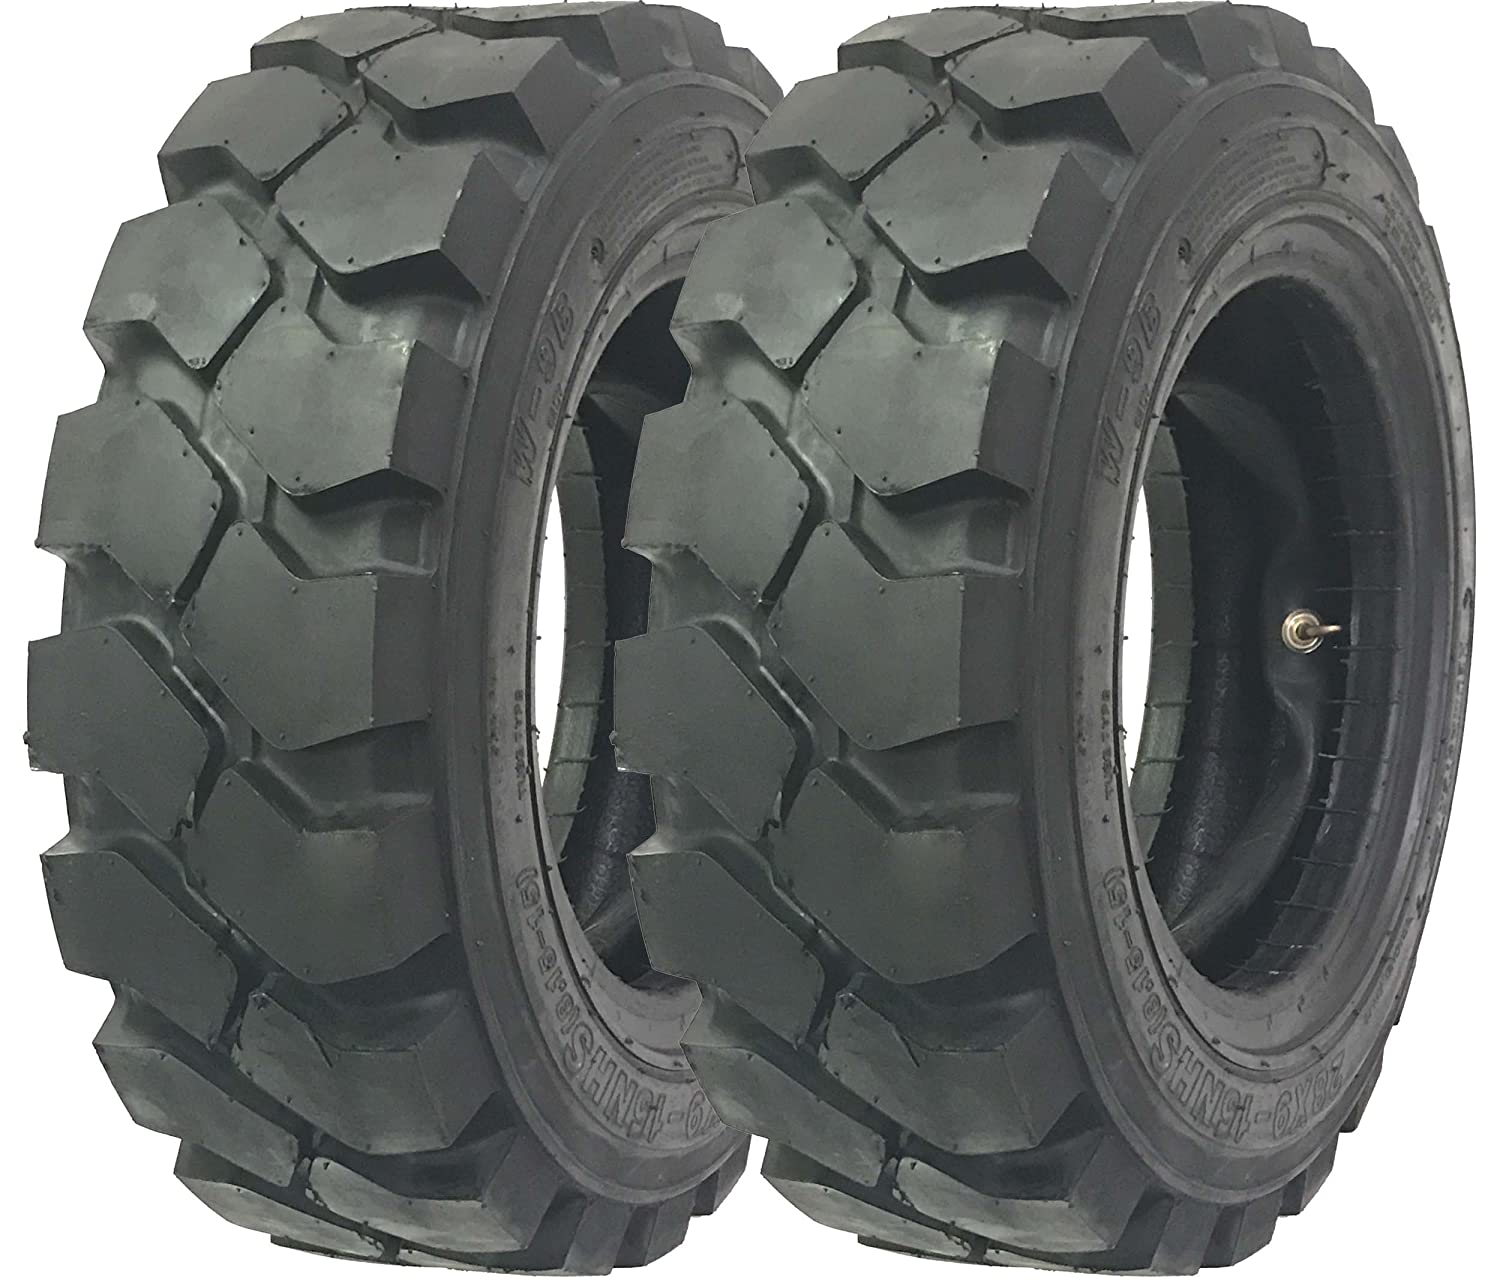 Set of 2 New Zeemax HD 28x9-15 8.15-15 //14TT Forklift Tires w//Tube /& Flap /& Rim Guard